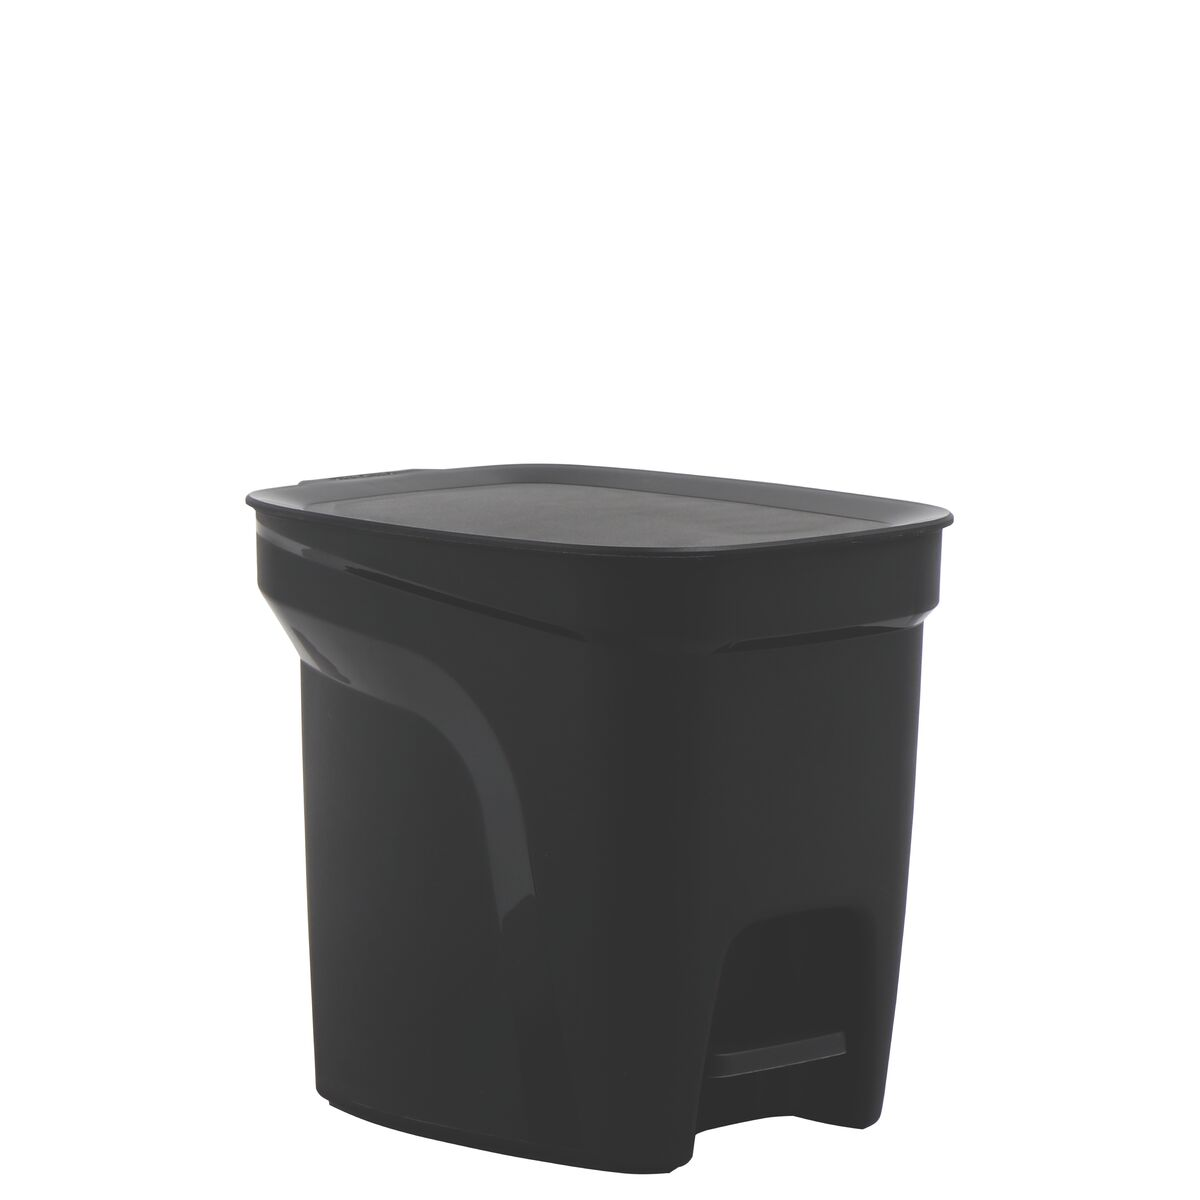 Tramontina Compact Black Polypropylene Compact Trash Can with a Galvanized Steel Rod, 7L